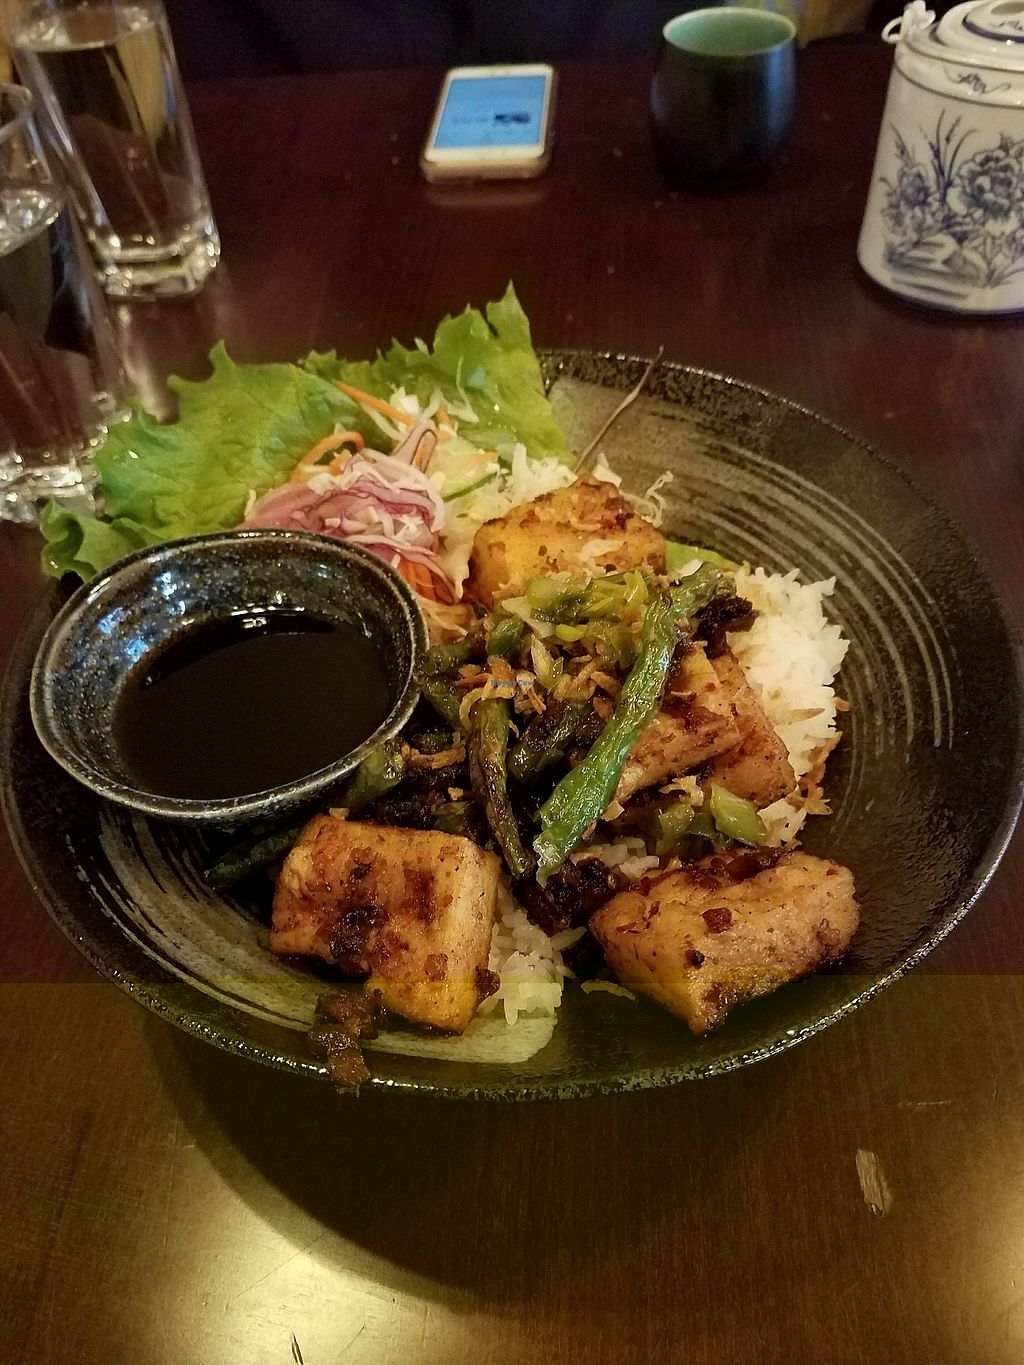 """Photo of House Special  by <a href=""""/members/profile/deathburrito23"""">deathburrito23</a> <br/>lemongrass tofu <br/> November 23, 2017  - <a href='/contact/abuse/image/82963/328587'>Report</a>"""